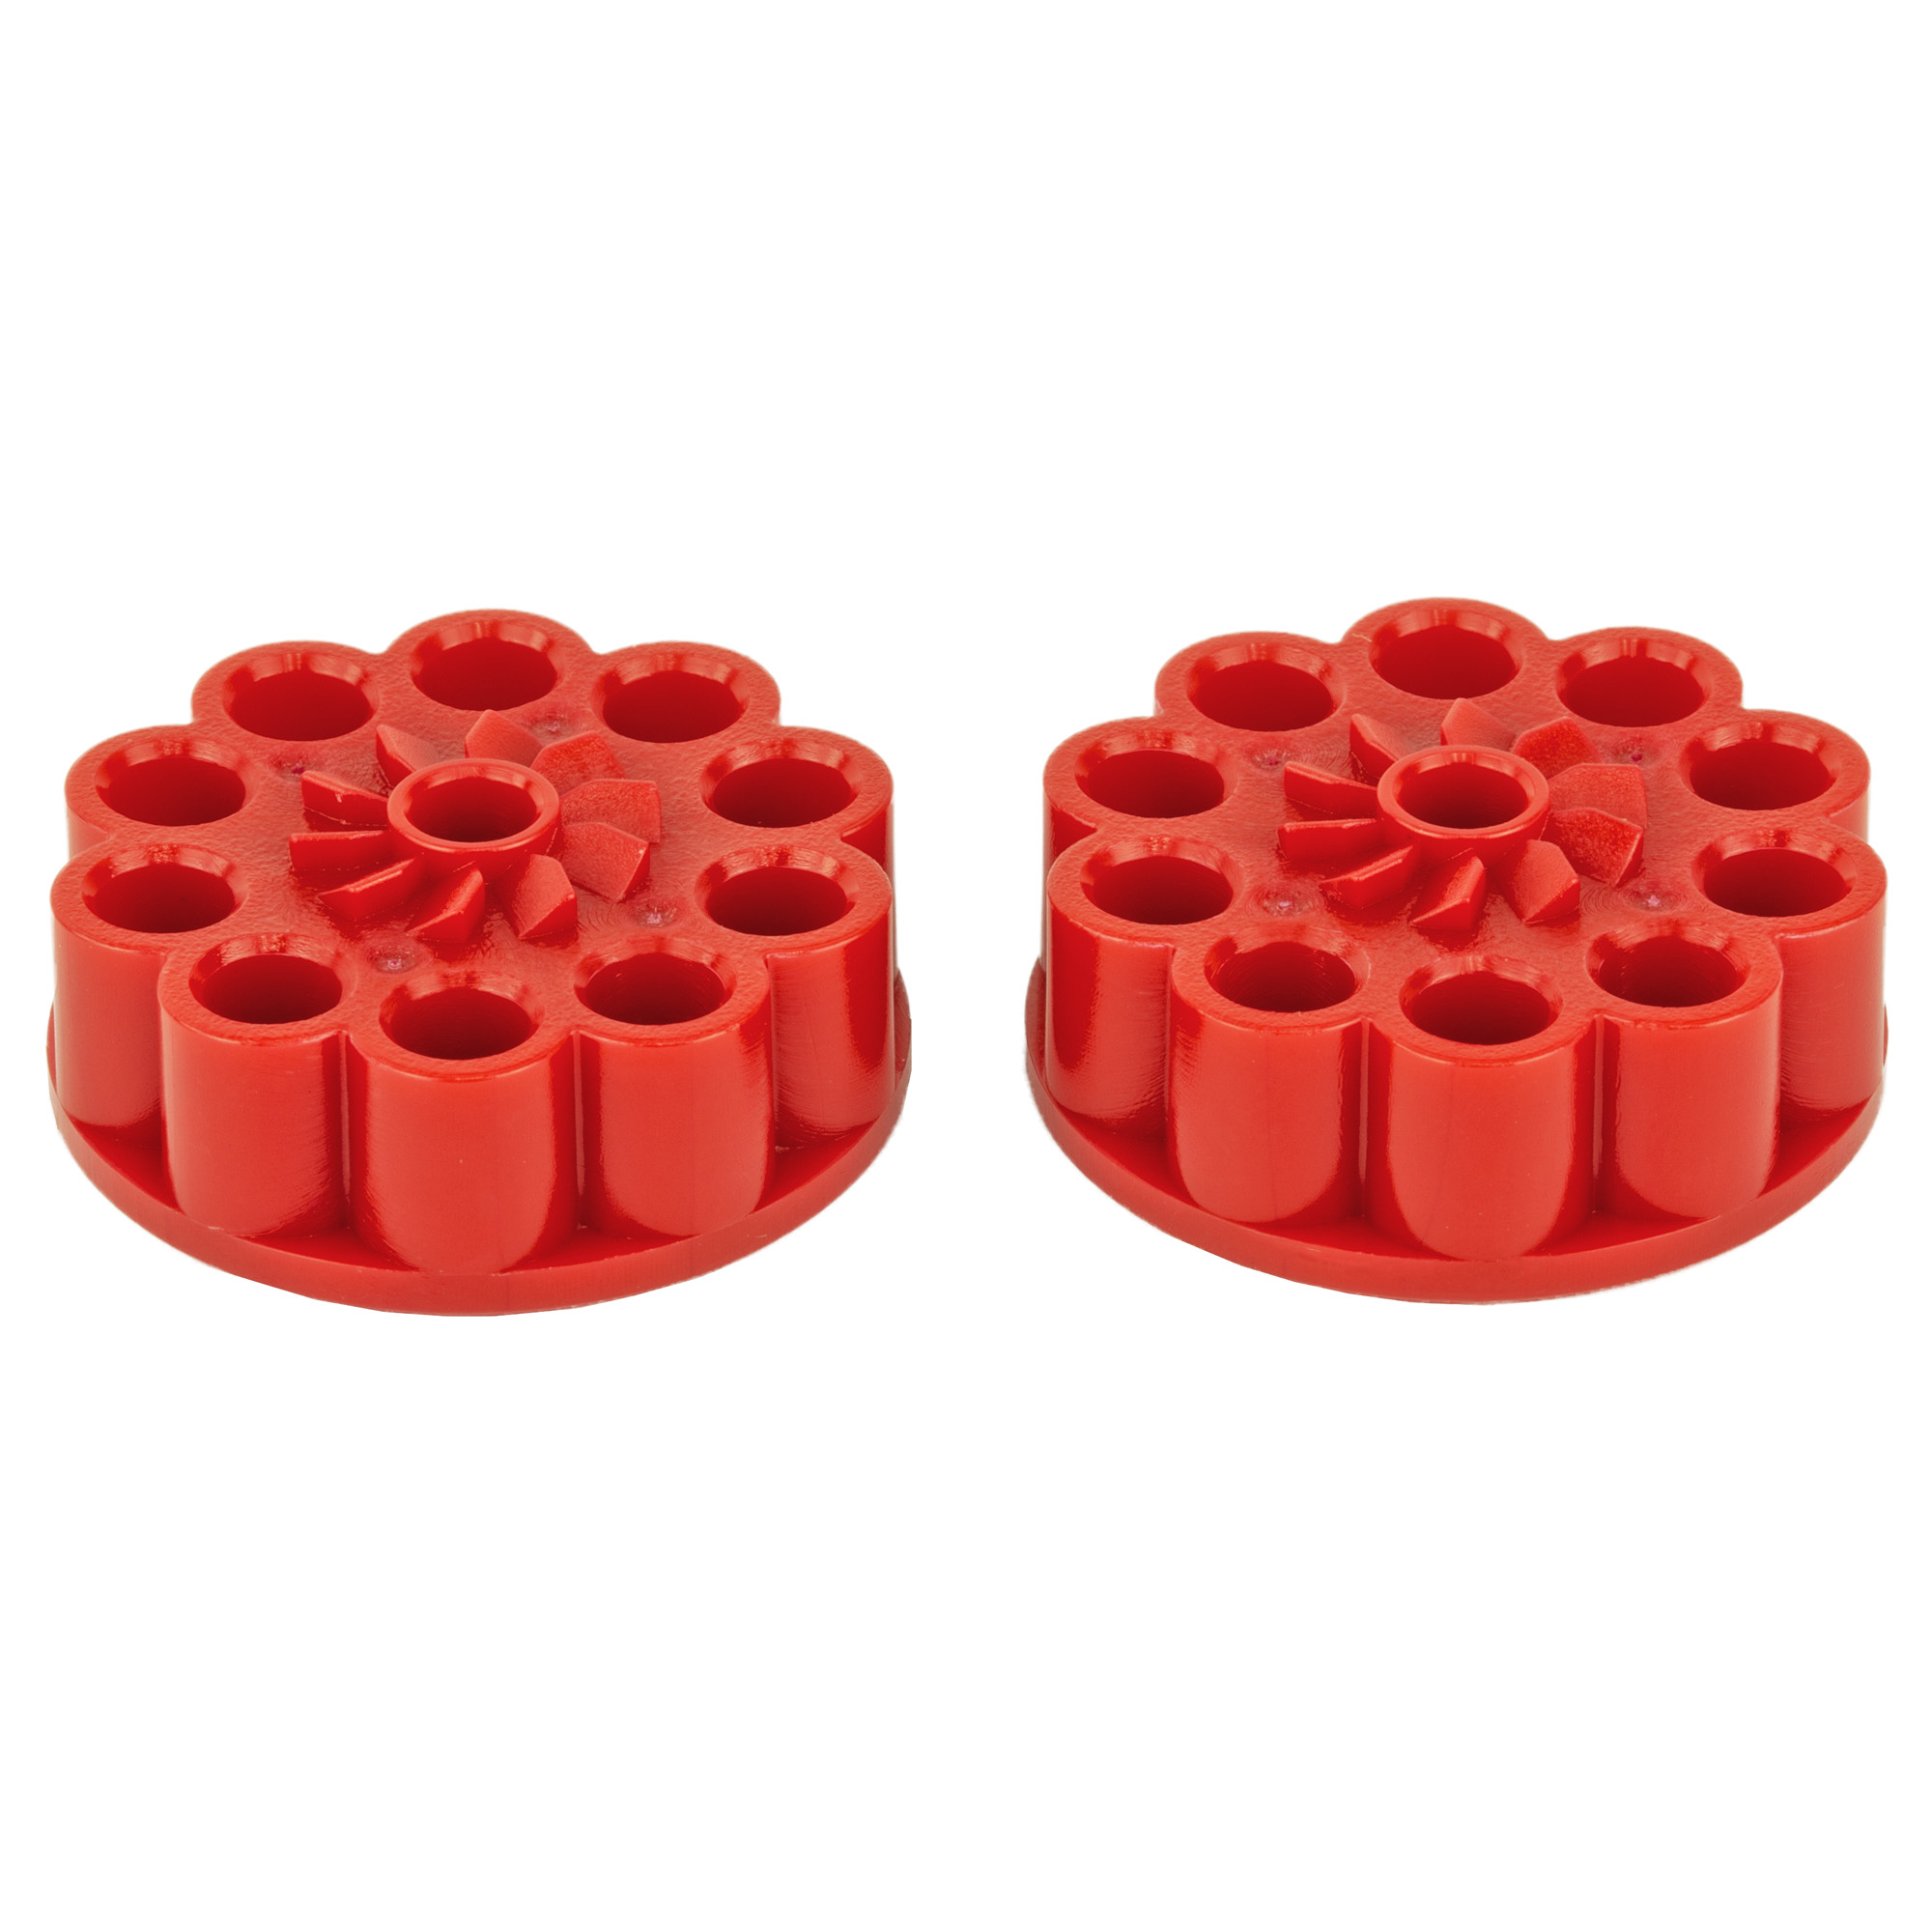 "This 2-pack of 10-shot rotary magazines for the Ruger 10/22 Air Rifle comes in handy when all you want to do is get in some trigger time. These .177 caliber pellet magazines are sold in a two-pack to offer shooters extended shooting and easy magazine changes. Remember ""gears to the rear"" when inserting the magazine and don't forget to lock the rotary mag in before inserting the magazine into the bottom of the receiver. Compatible only with the Ruger 10/22 Air Rifle manufactured by UMAREX under license from Sturm"" Ruger & Co"" Inc."